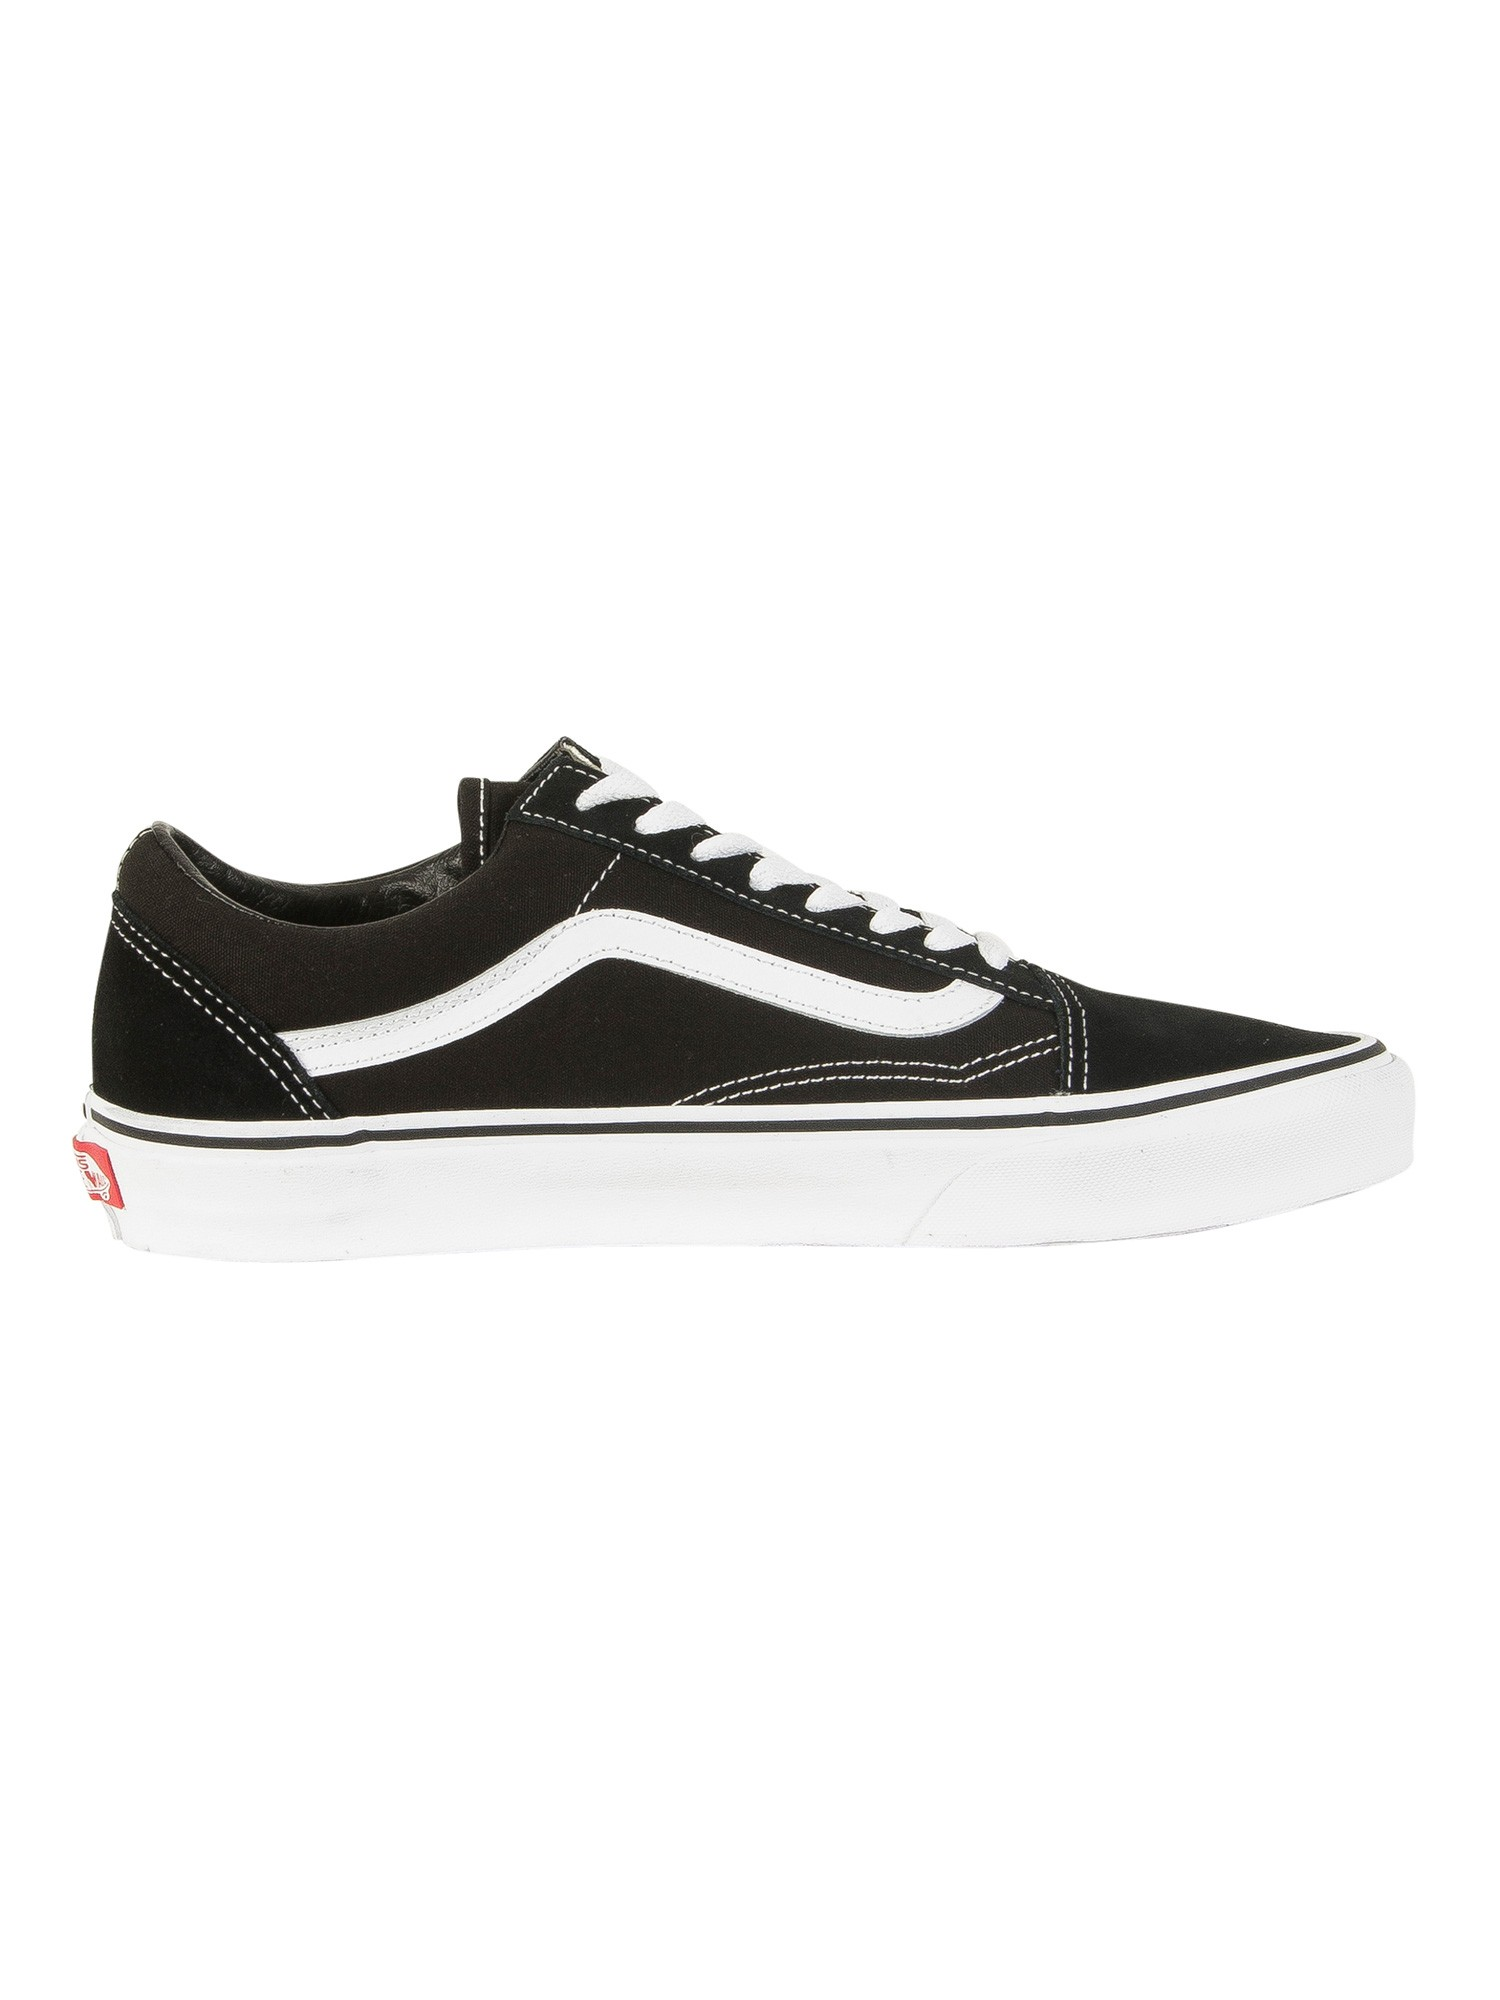 Vans Black/White Old Skool Trainers